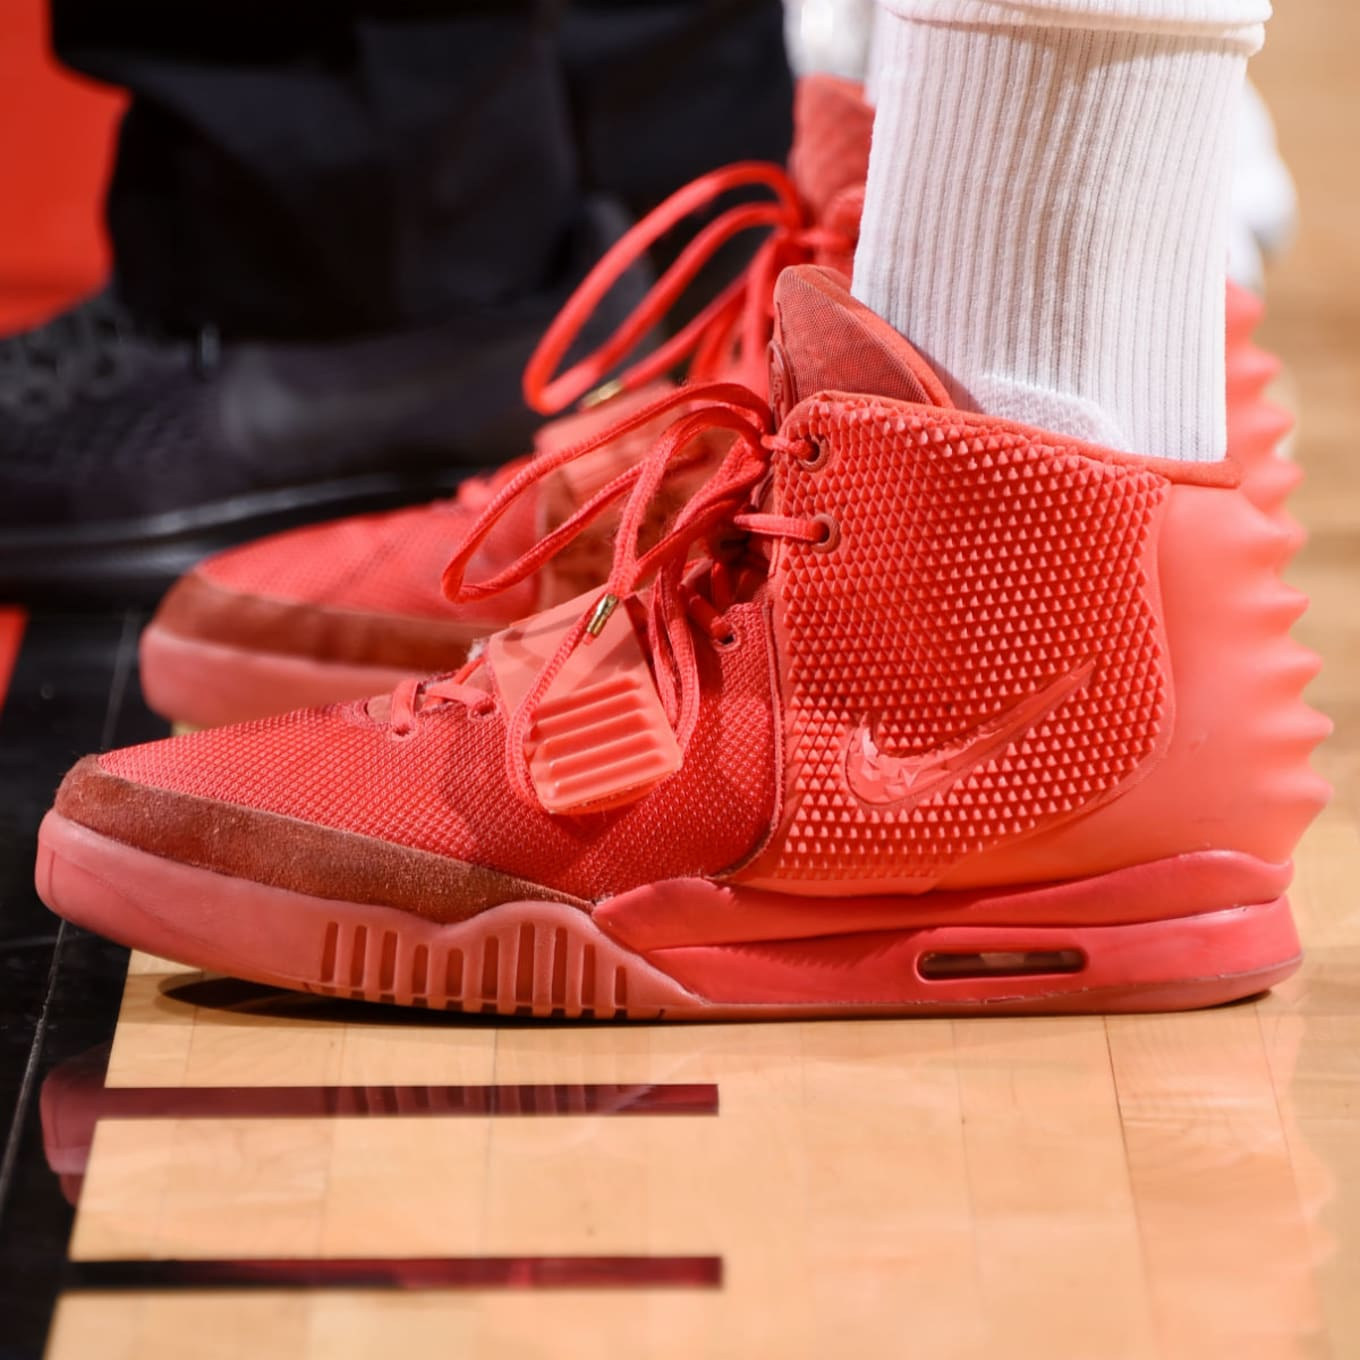 830d13e442aa6 P.J. Tucker Nike Air Yeezy 2 Red October